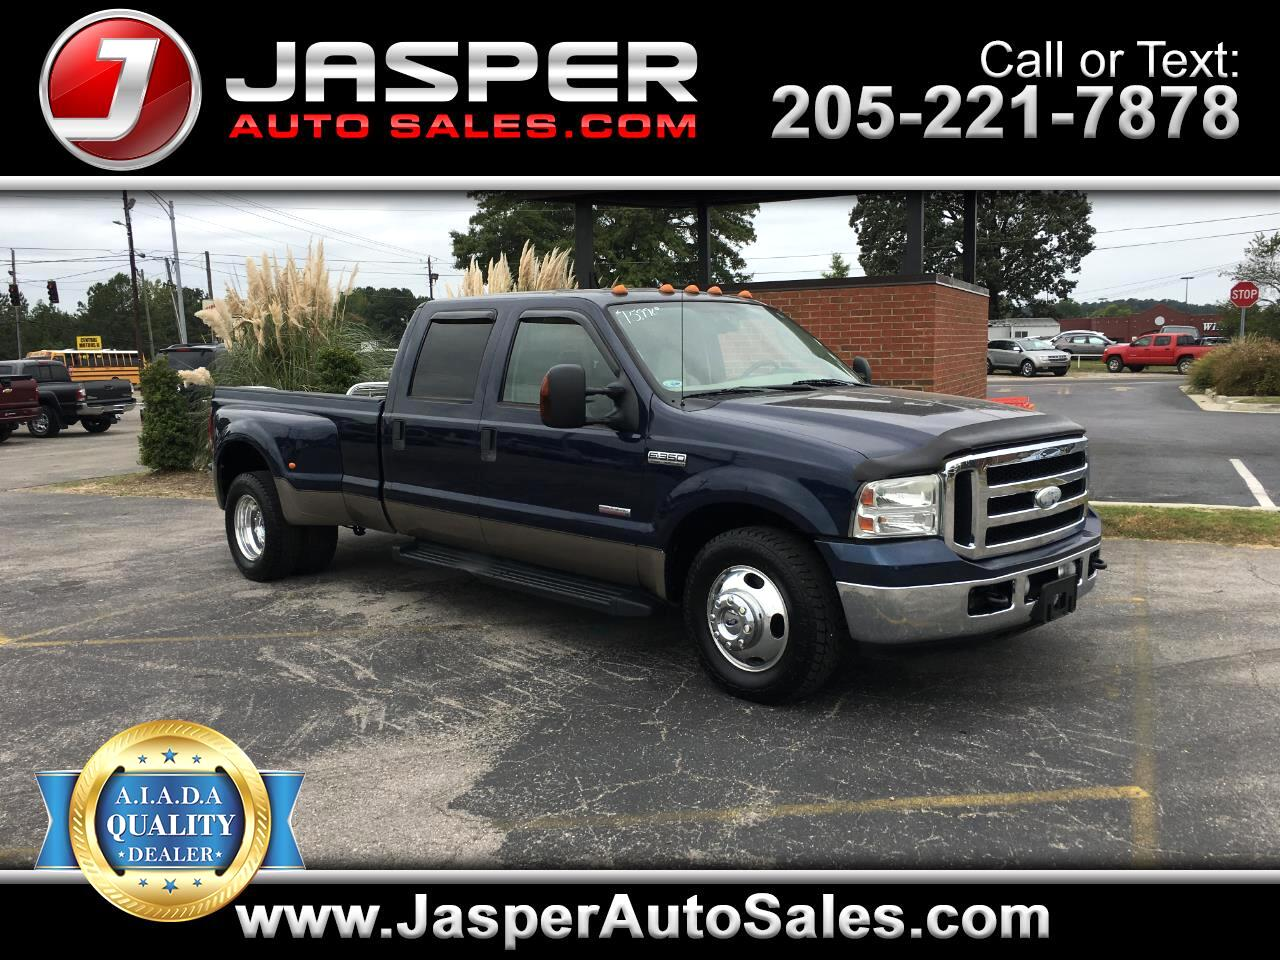 2006 Ford Super Duty F-350 DRW Crew Cab 172